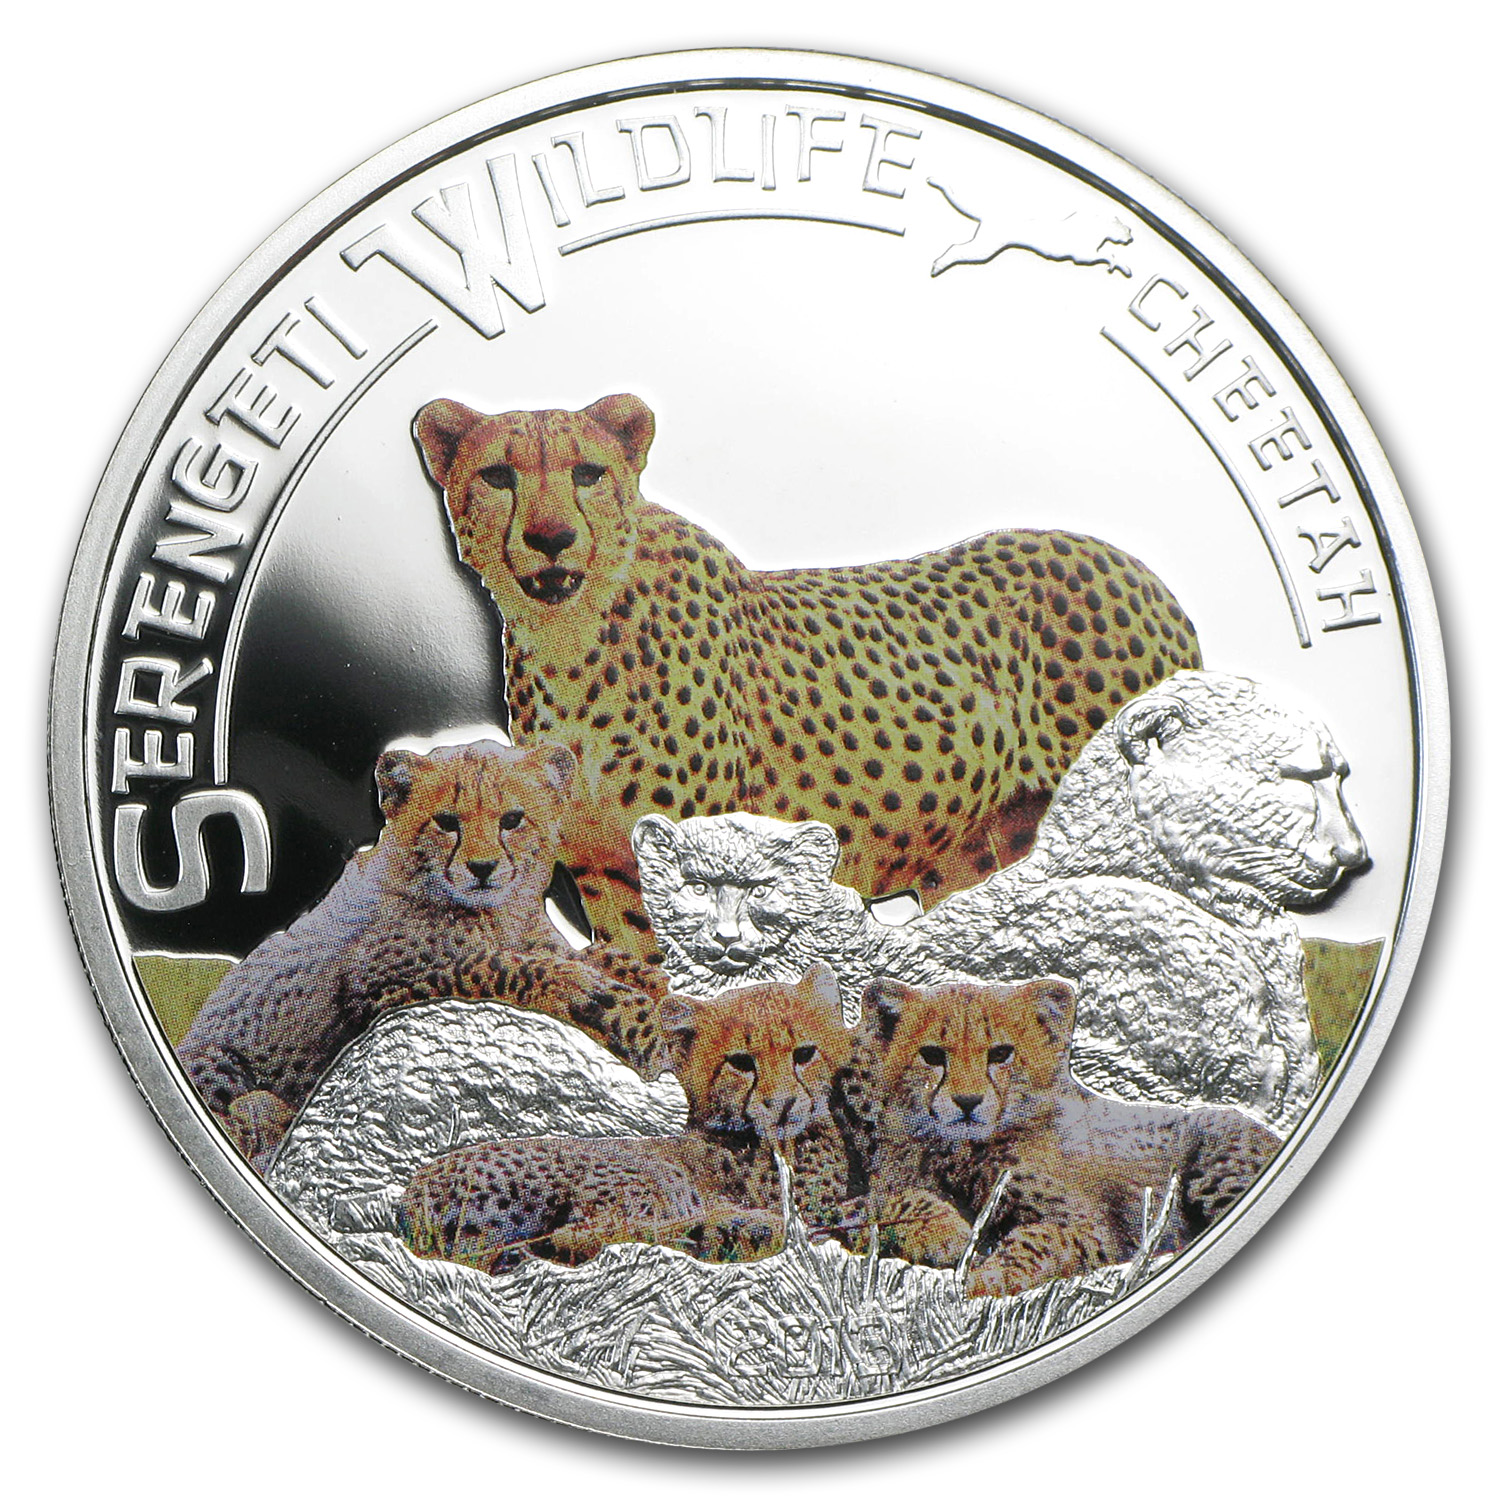 2013 Tanzania Silver Serengeti Wildlife Cheetah Proof